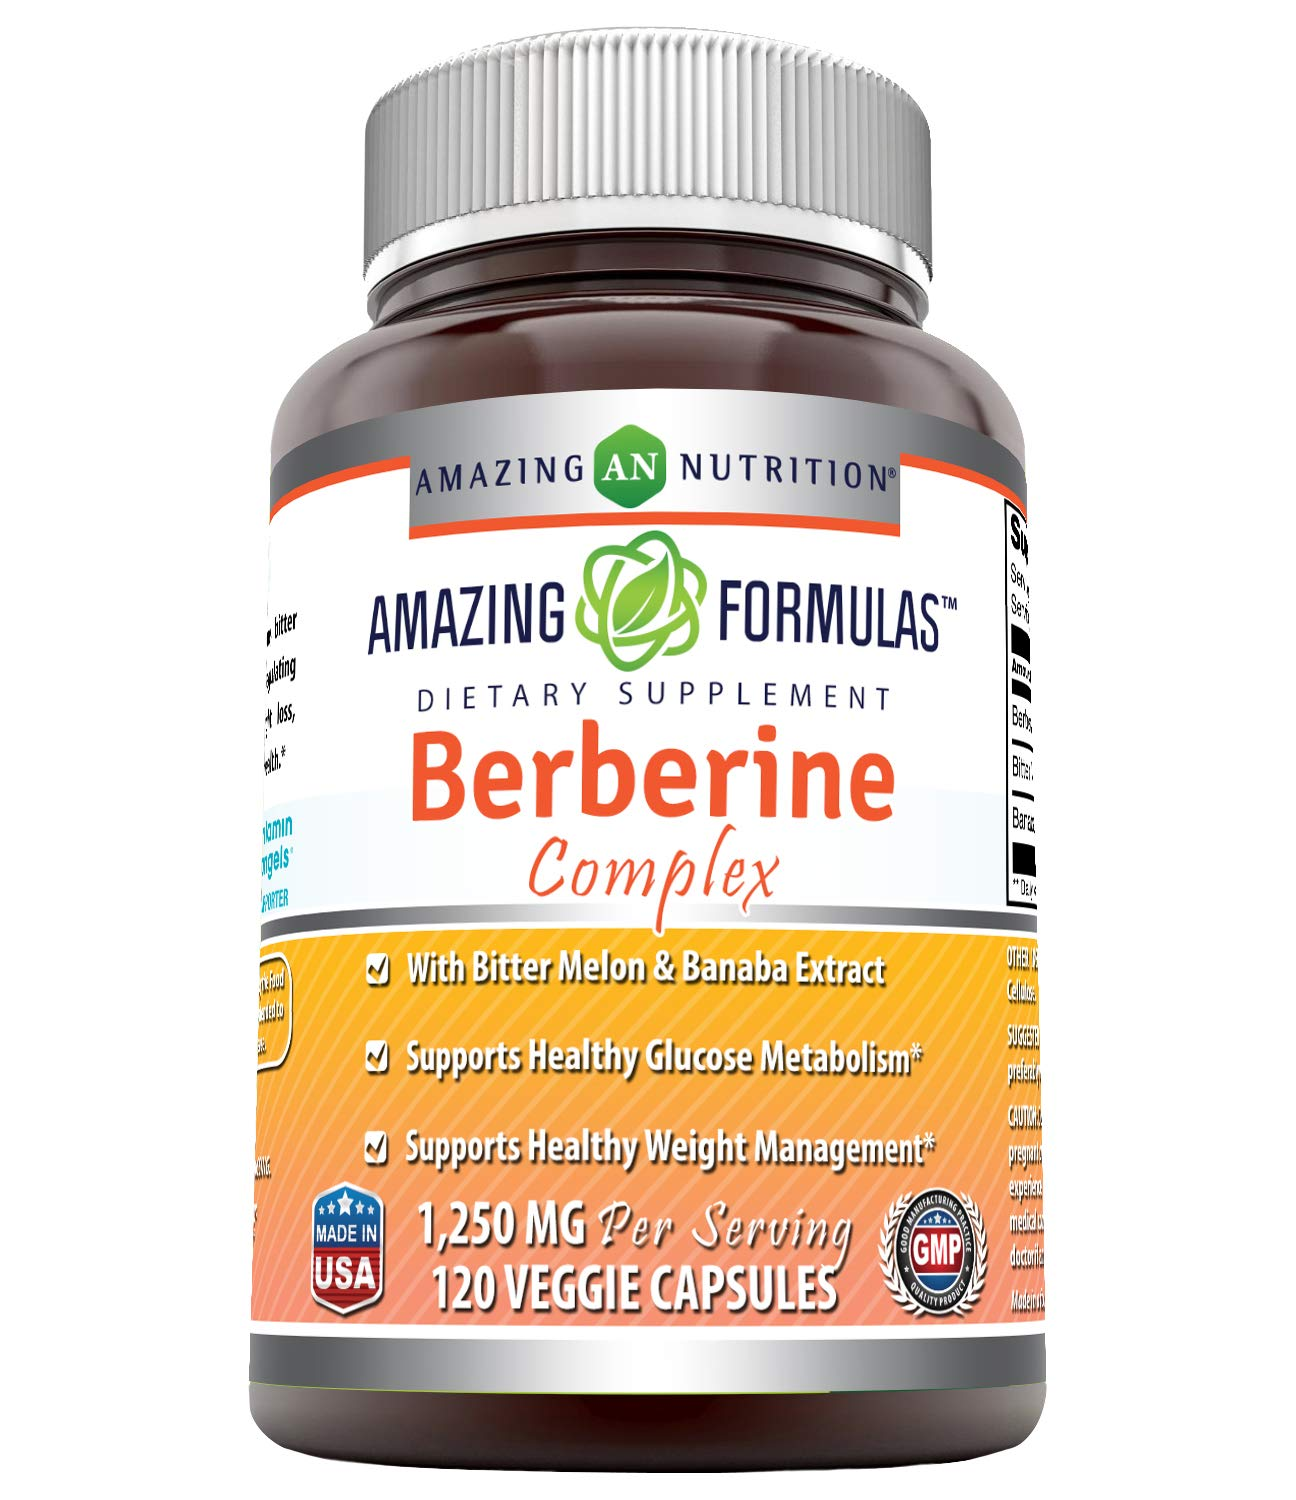 Amazing Formulas Berberine Complex 1250 mg per Serving 120 Veggie Capsules Non-GMO – with Bittor Melon Banaba Extract Supports Healthy Glucose Metabolism and Healthy Weight Management